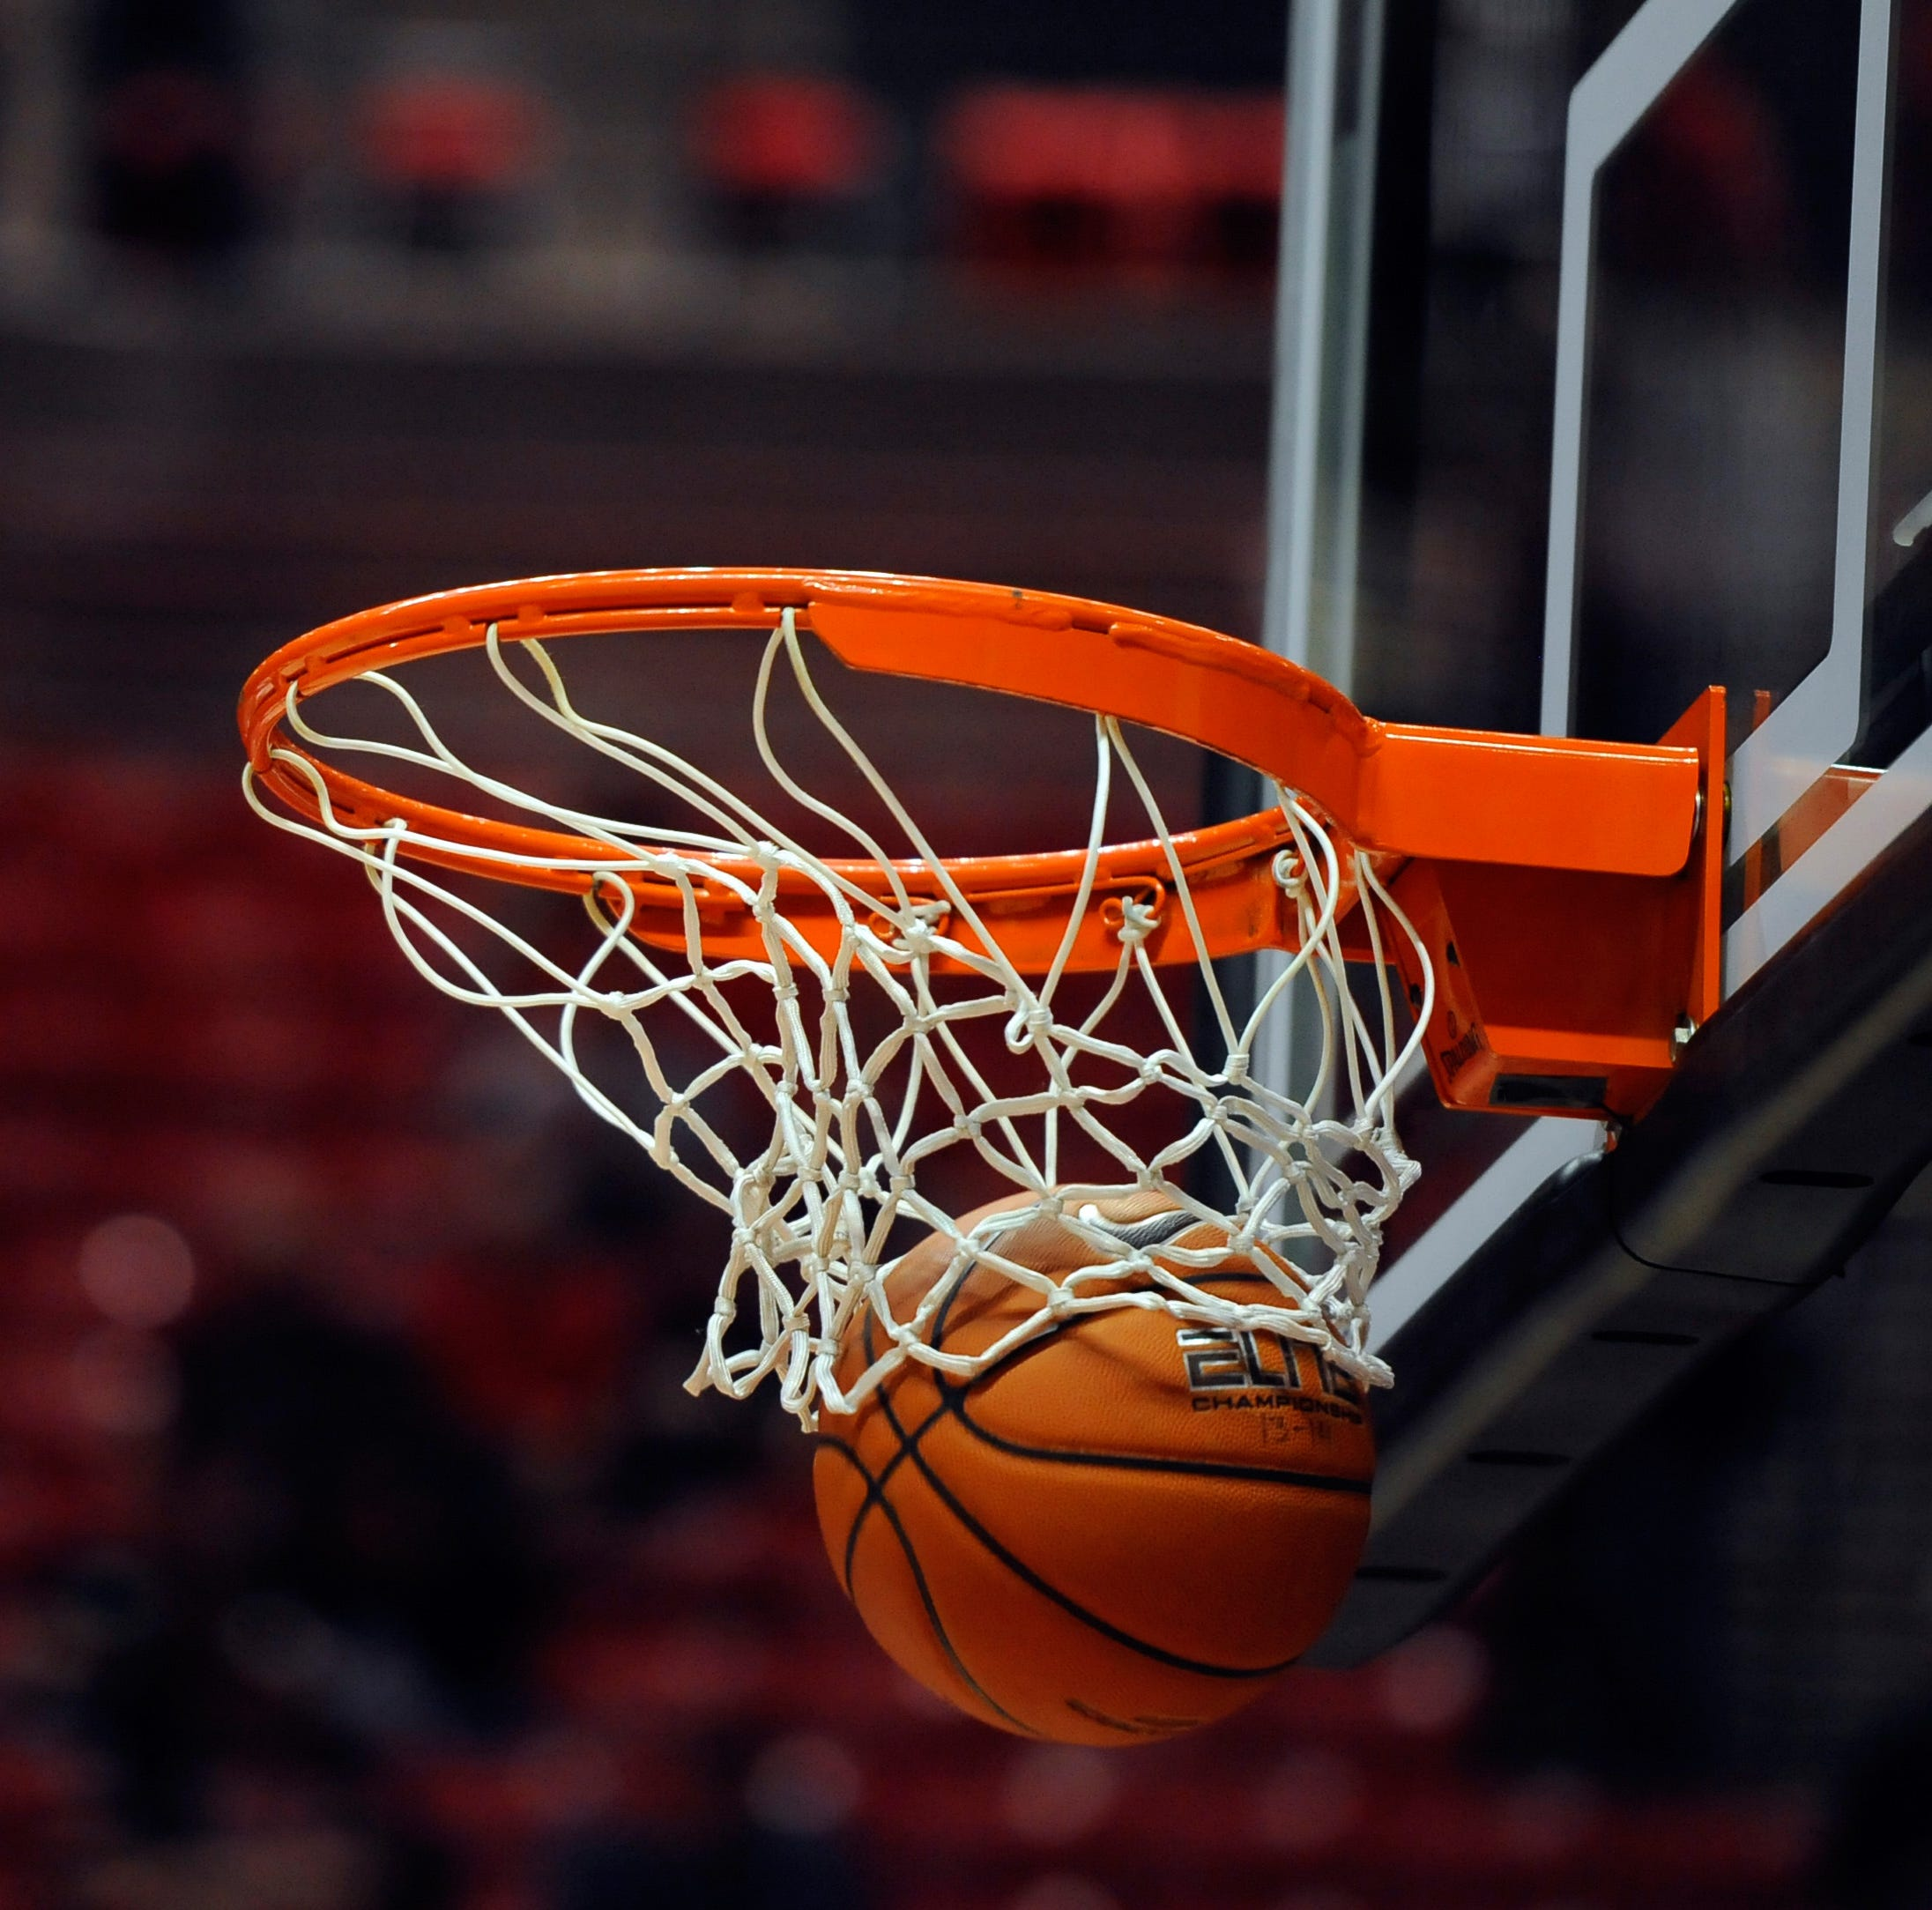 Scores from Tuesday's high school basketball playoff games